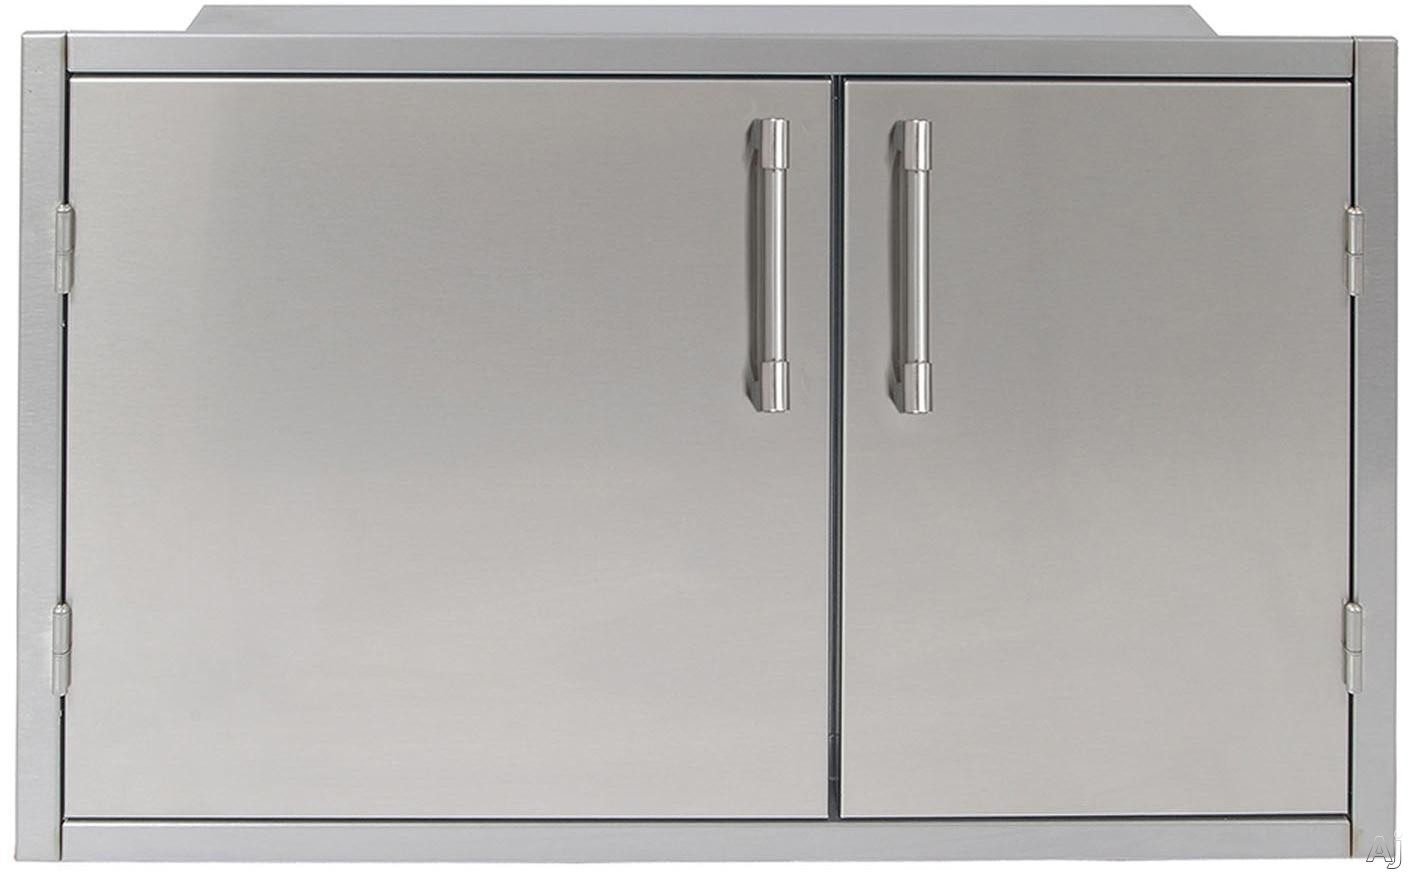 Alfresco Axedsp42l 42 Inch Low-profile Built-in Dry Pantry